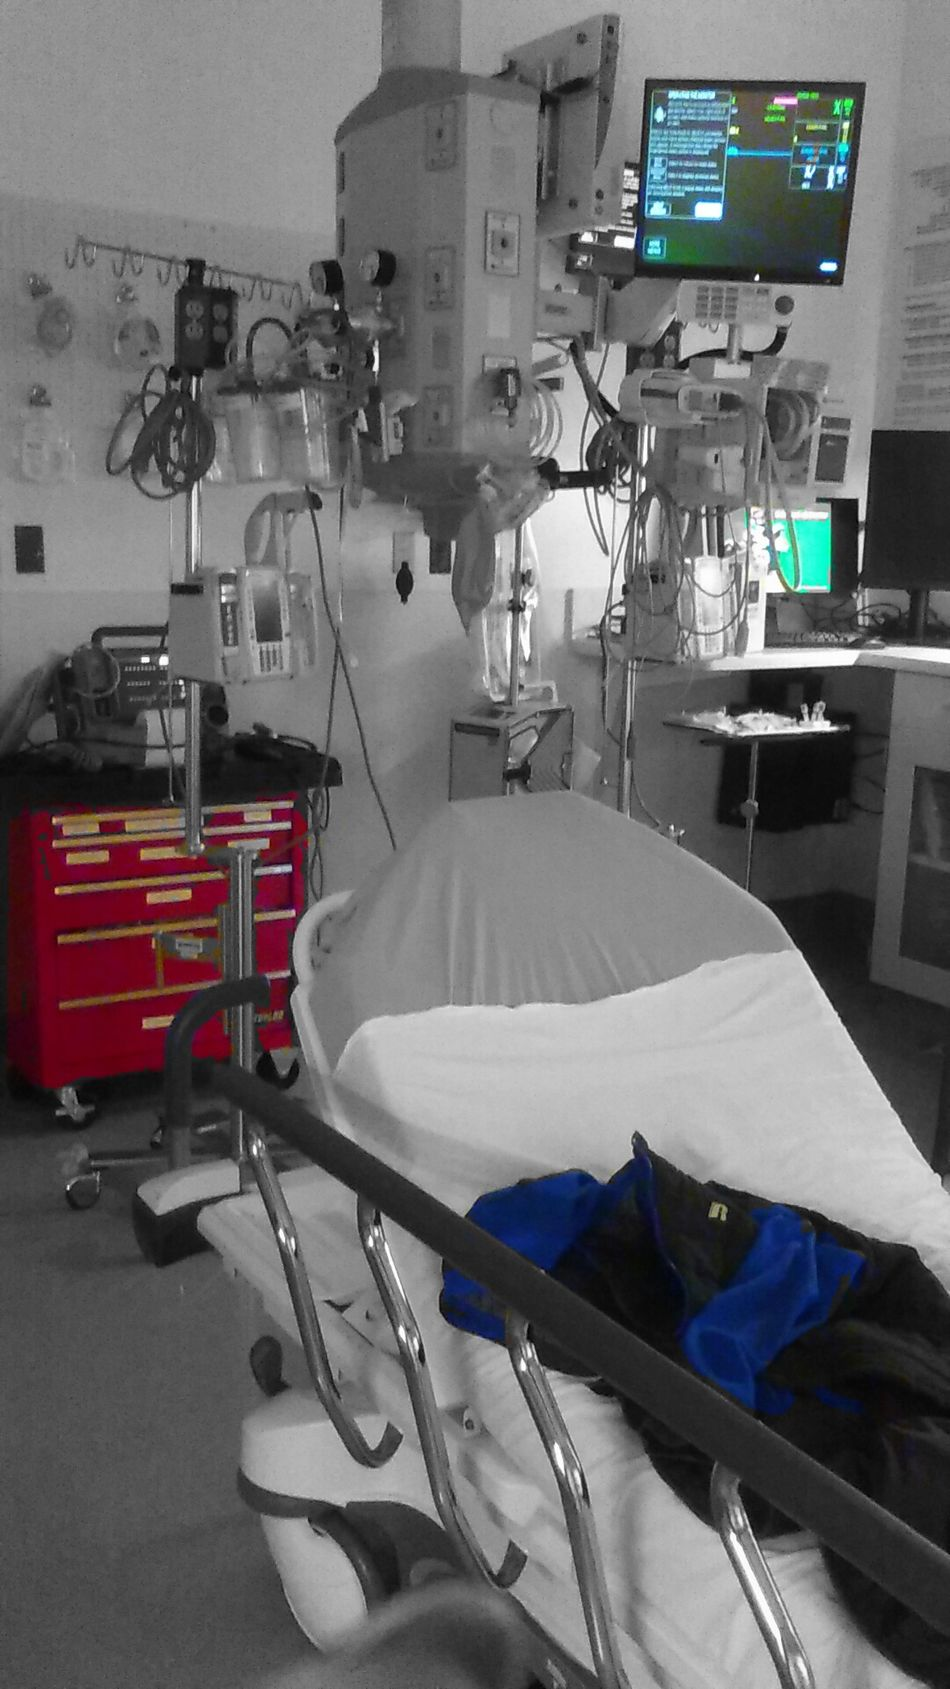 Hurt Young Cowboy Emergencyroom Technology Wonders Of Medicine Life And Death Live Life To The Fullest Telling Stories Differently